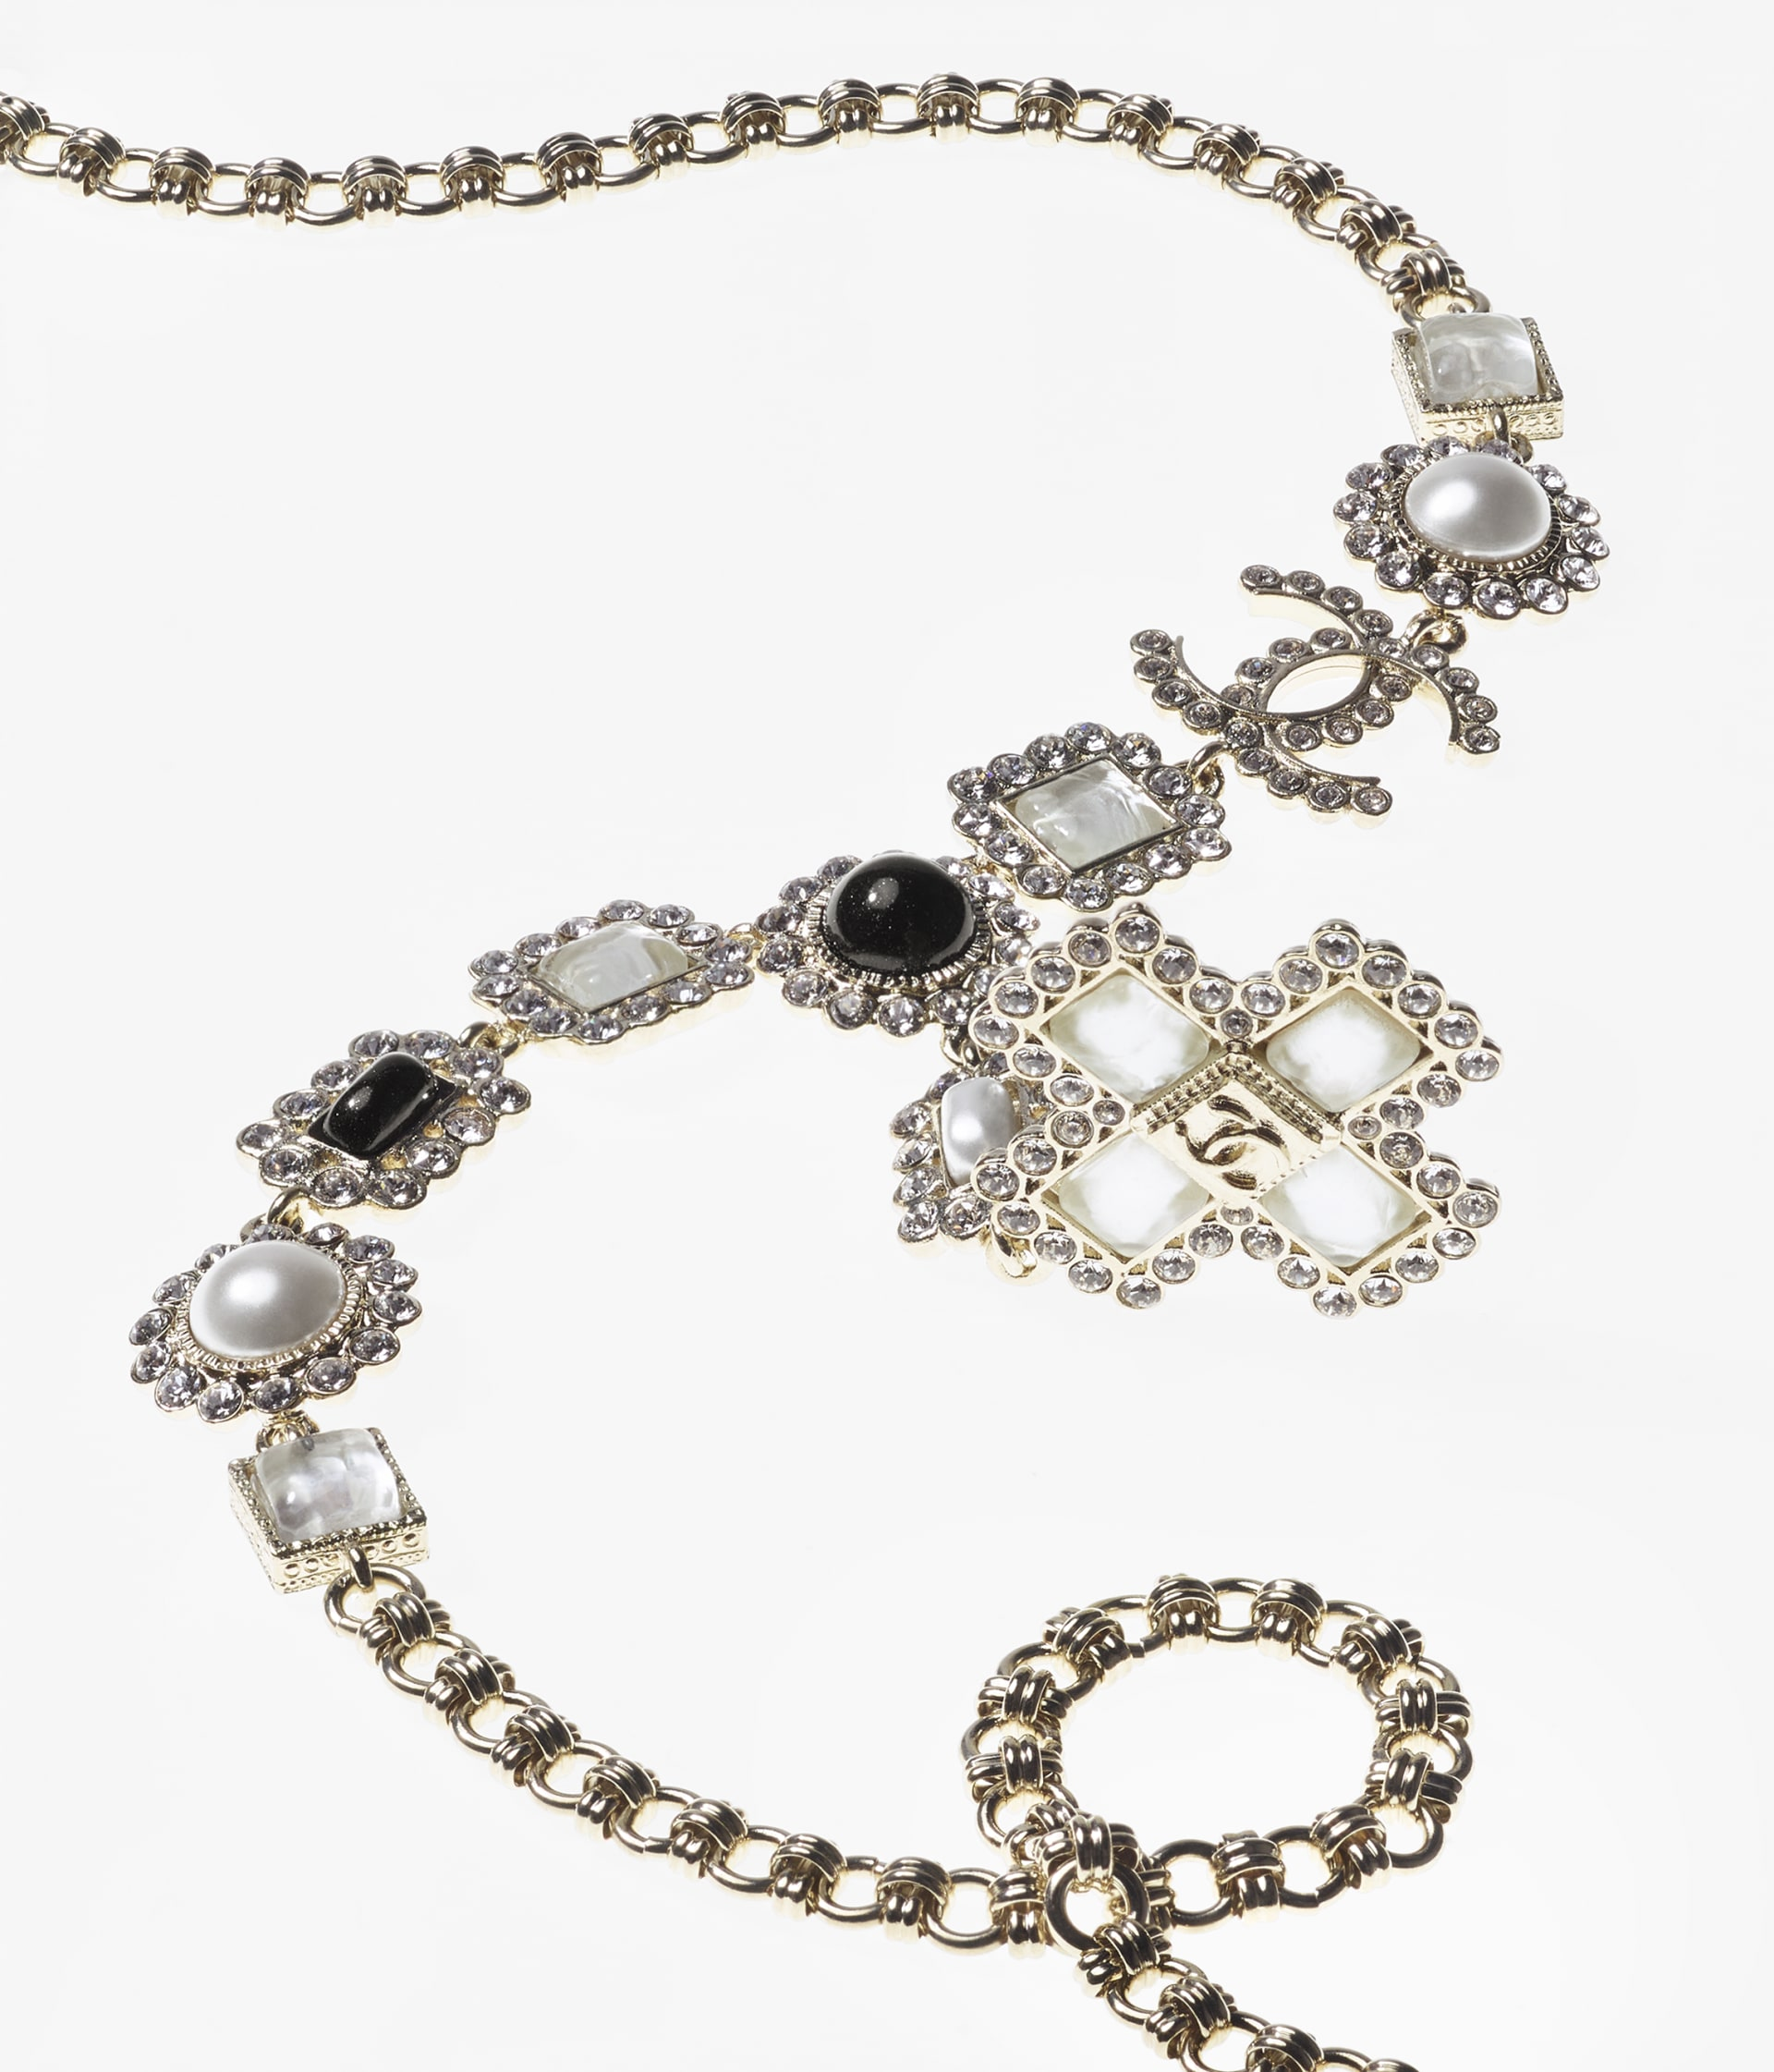 image 2 - Long Necklace - Metal, Glass Pearls, Glass & Strass - Gold, Pearly White, Black & Crystal